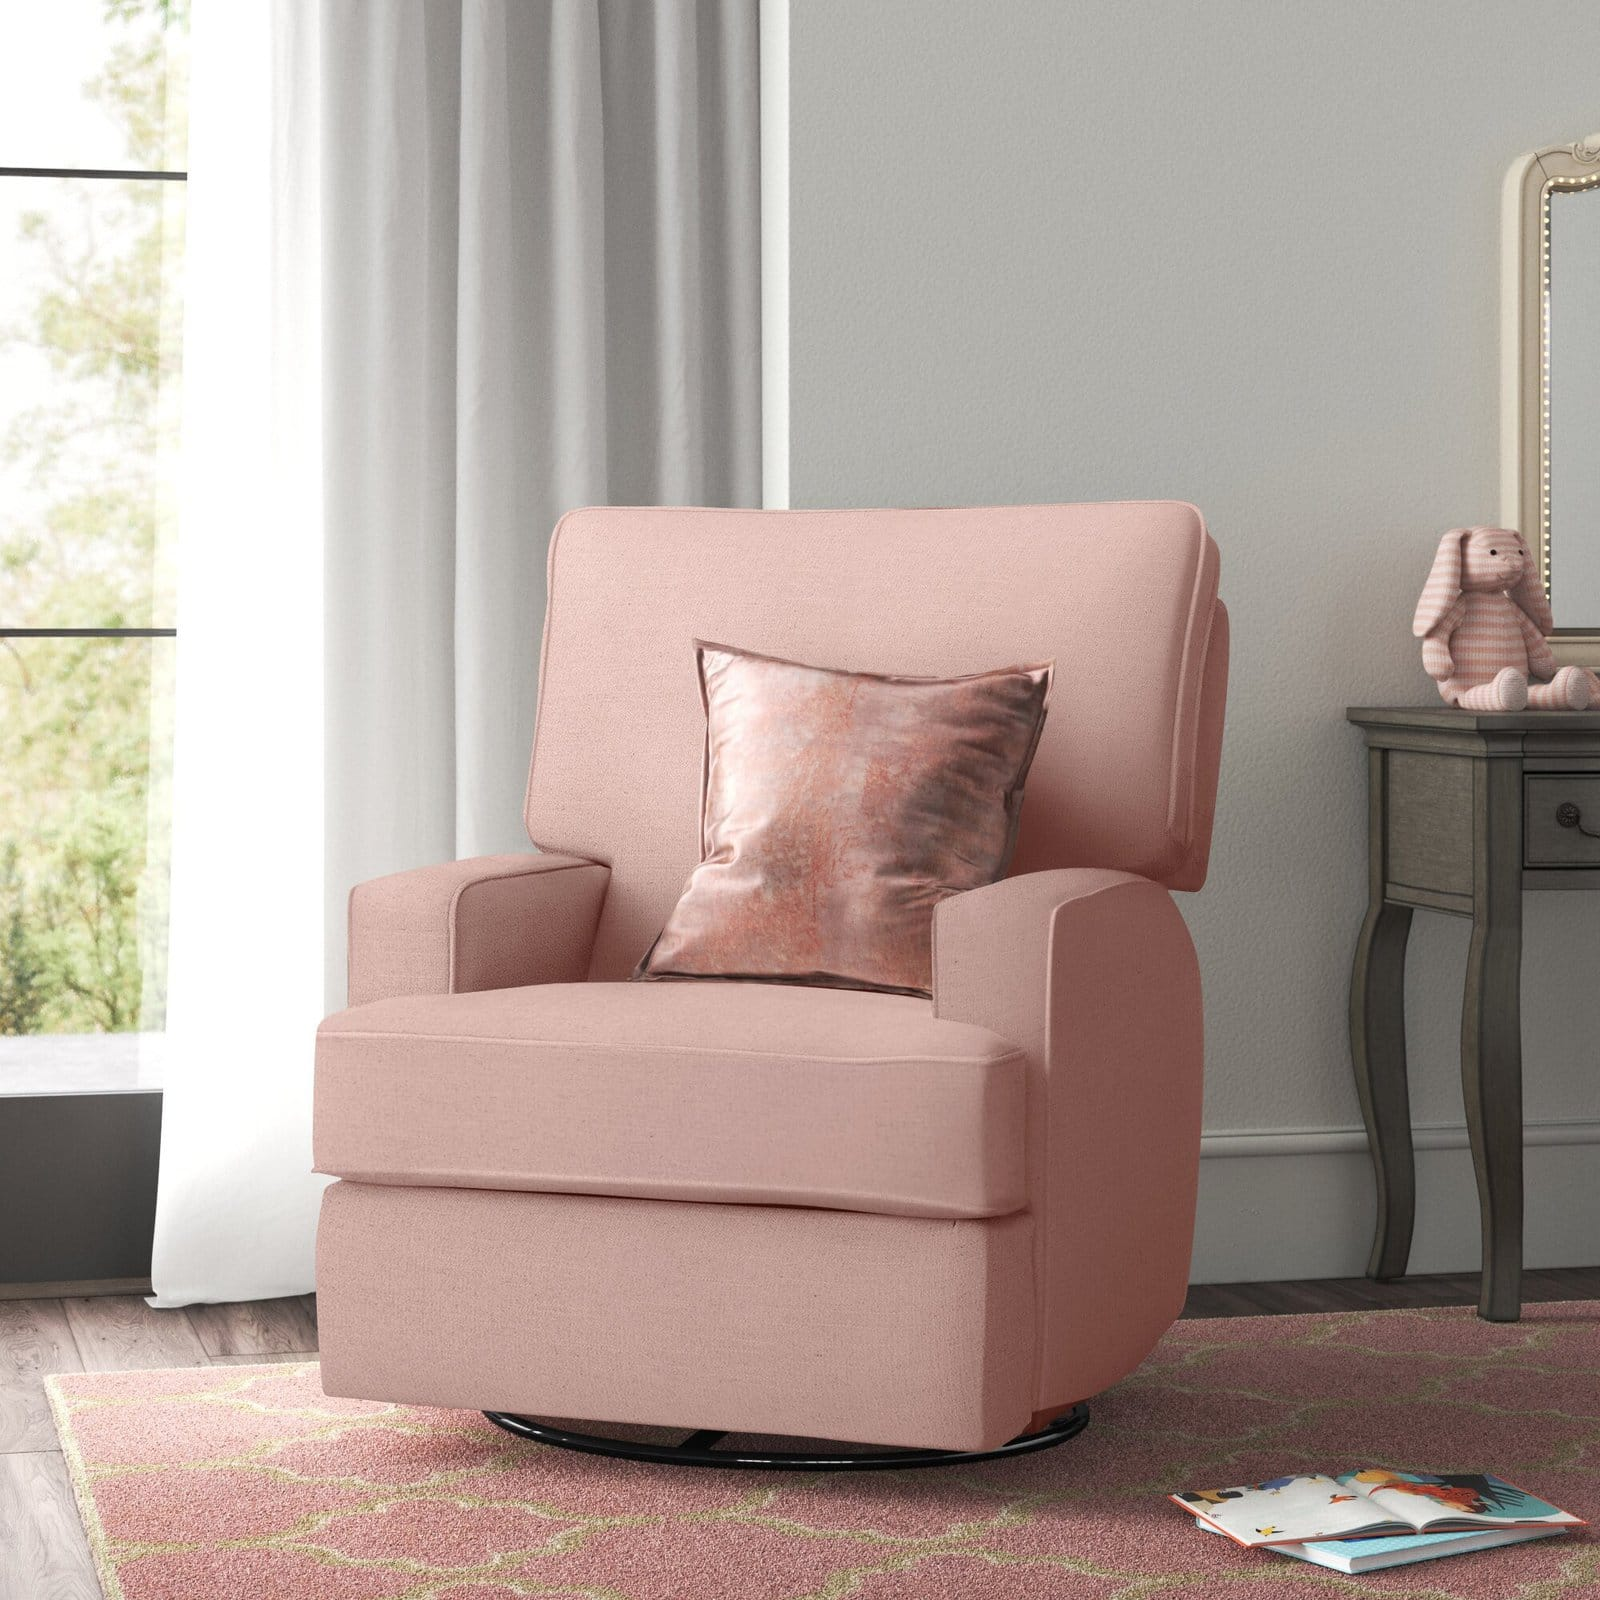 A Blush Reclining Chair for a Baby Girl's Nursery